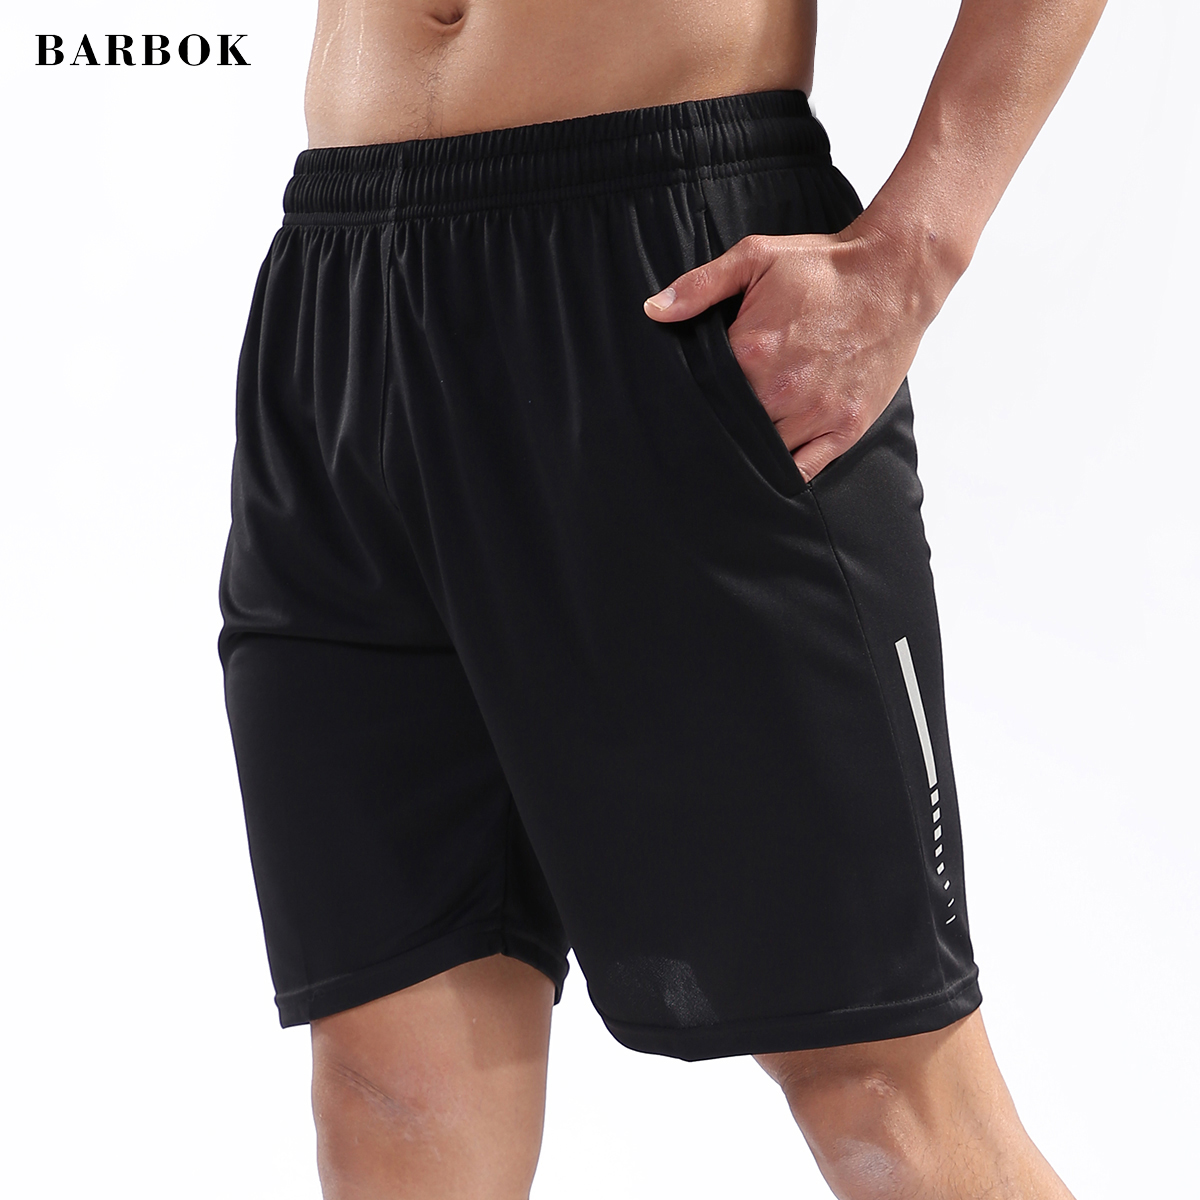 BARBOK Sports Shorts Elastic Tight Gym Exercise Hip Hop Workout Short Pants Male Female Quick Drying Fitness Shorts